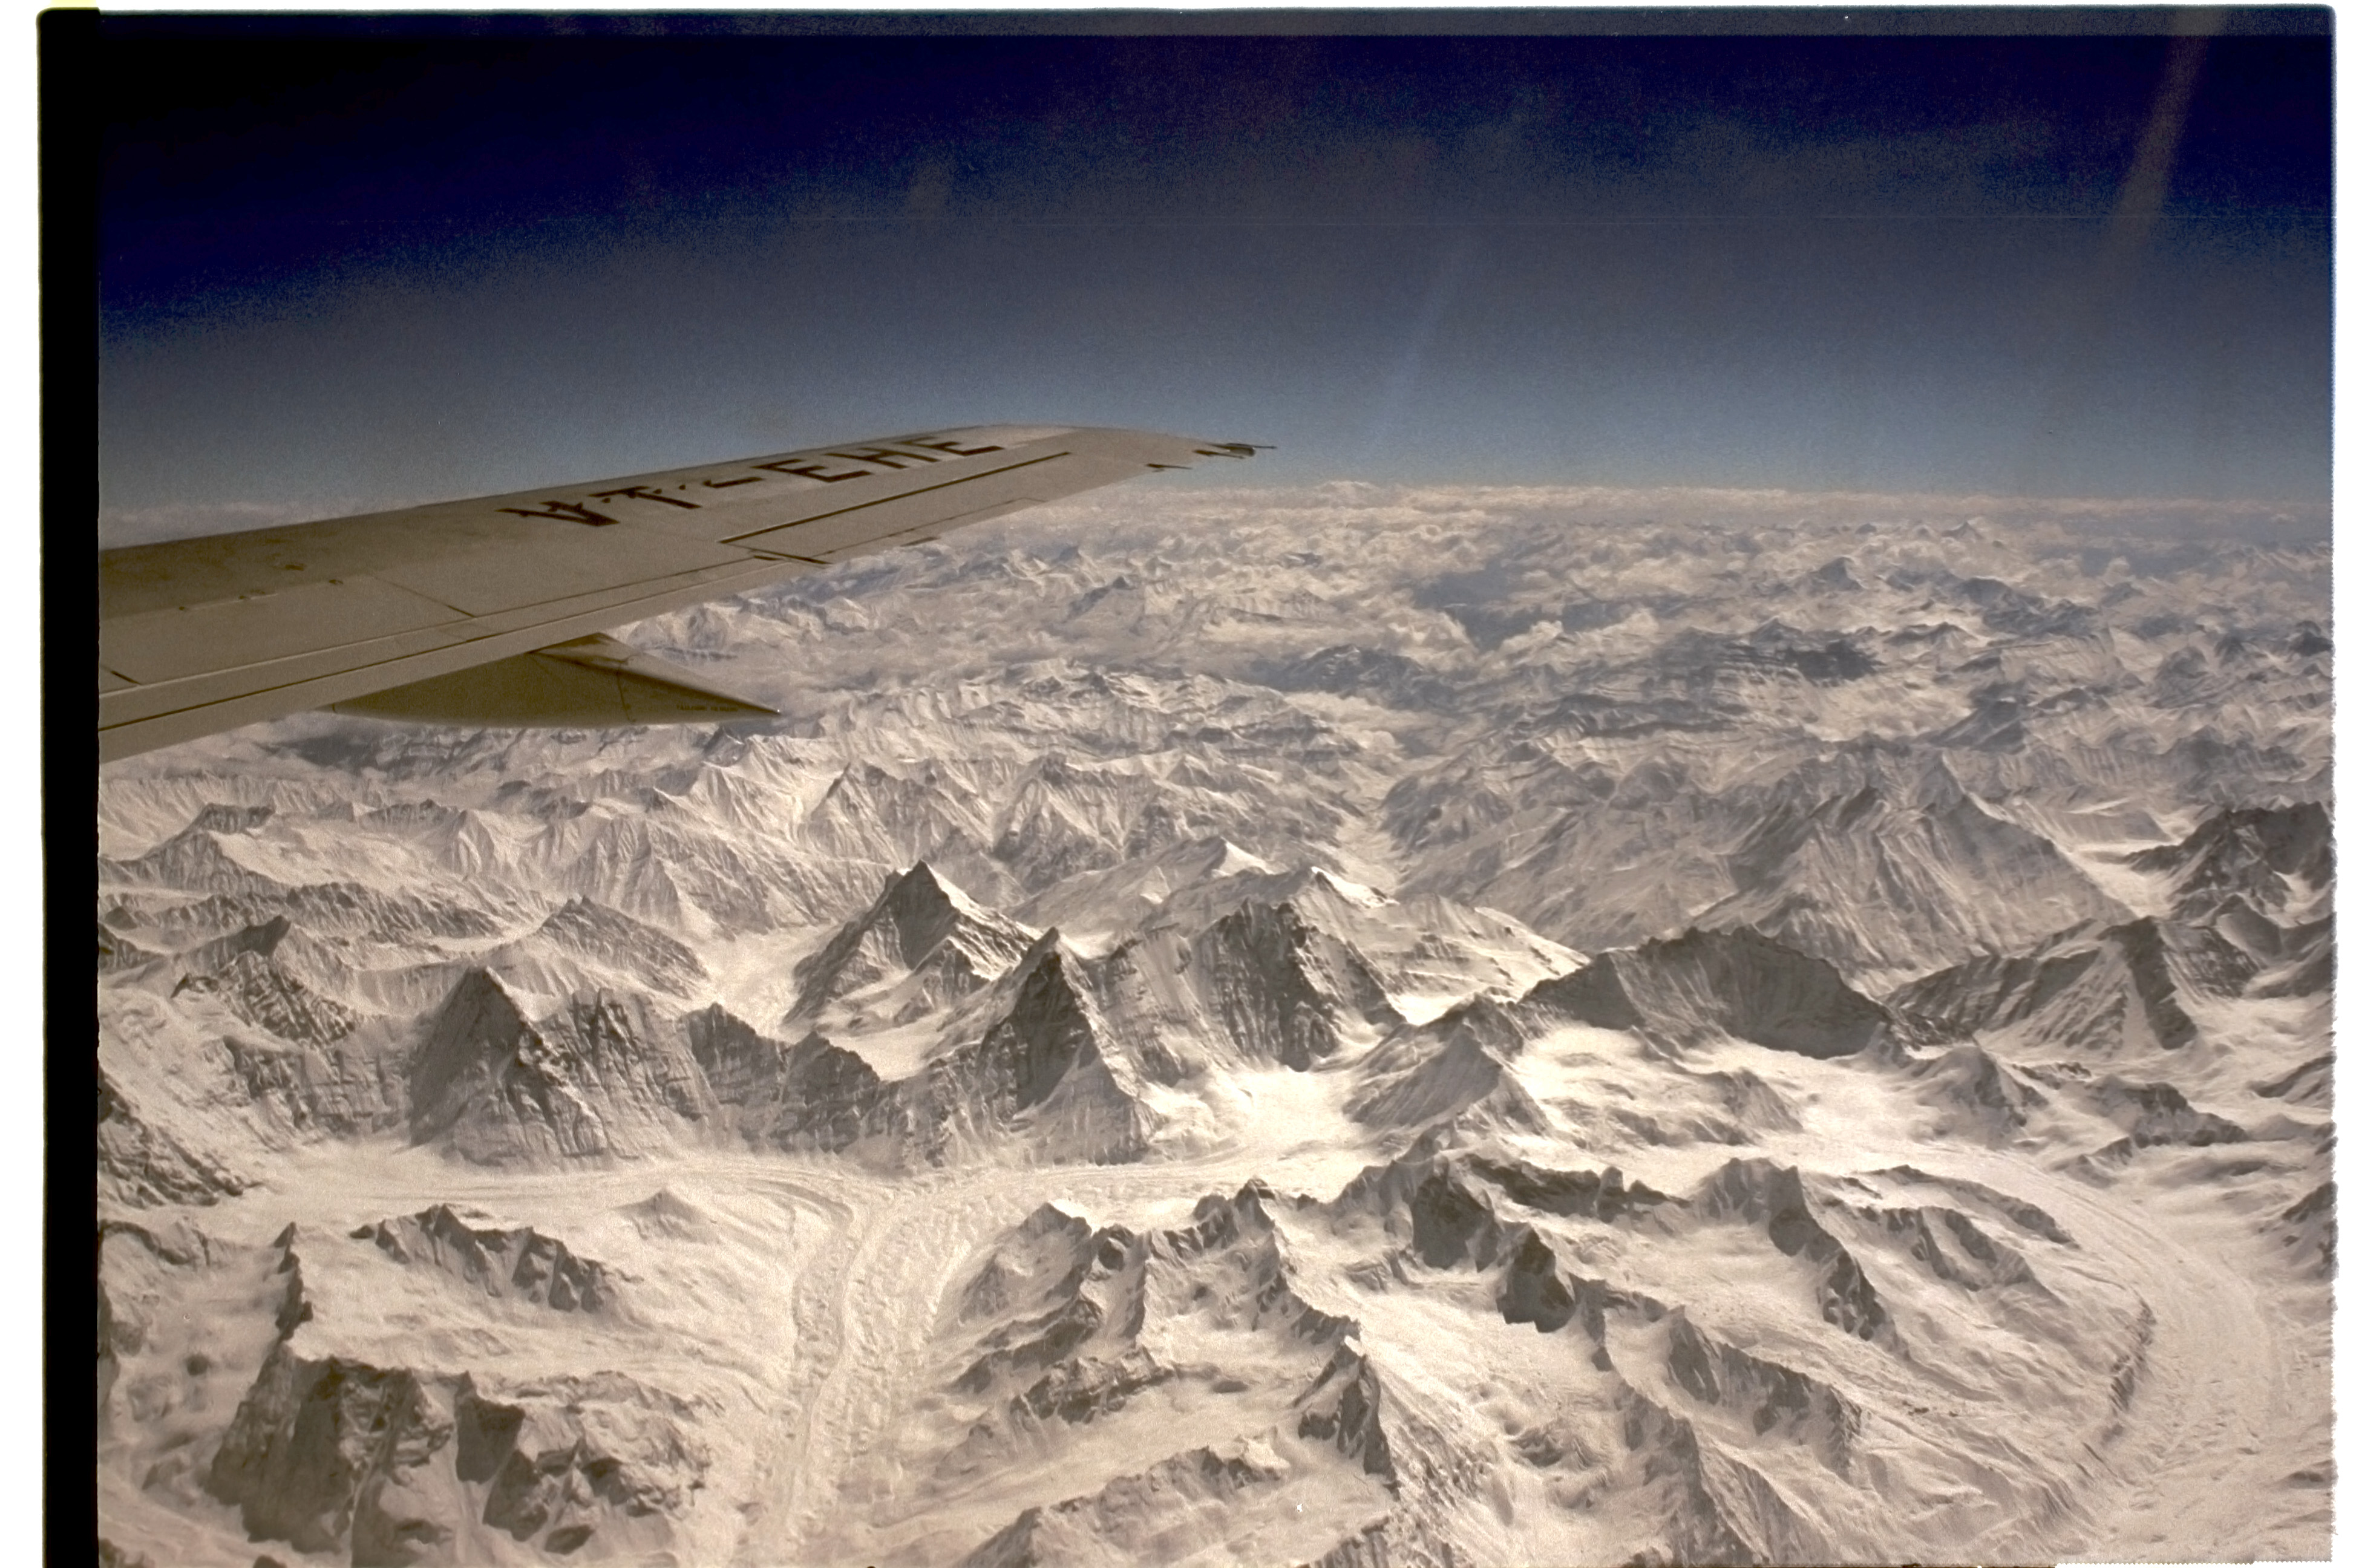 Siachen_Glacier_Kashmir_(WINTER-1980)_From_Air__UNITED_NATION_FLIGHT